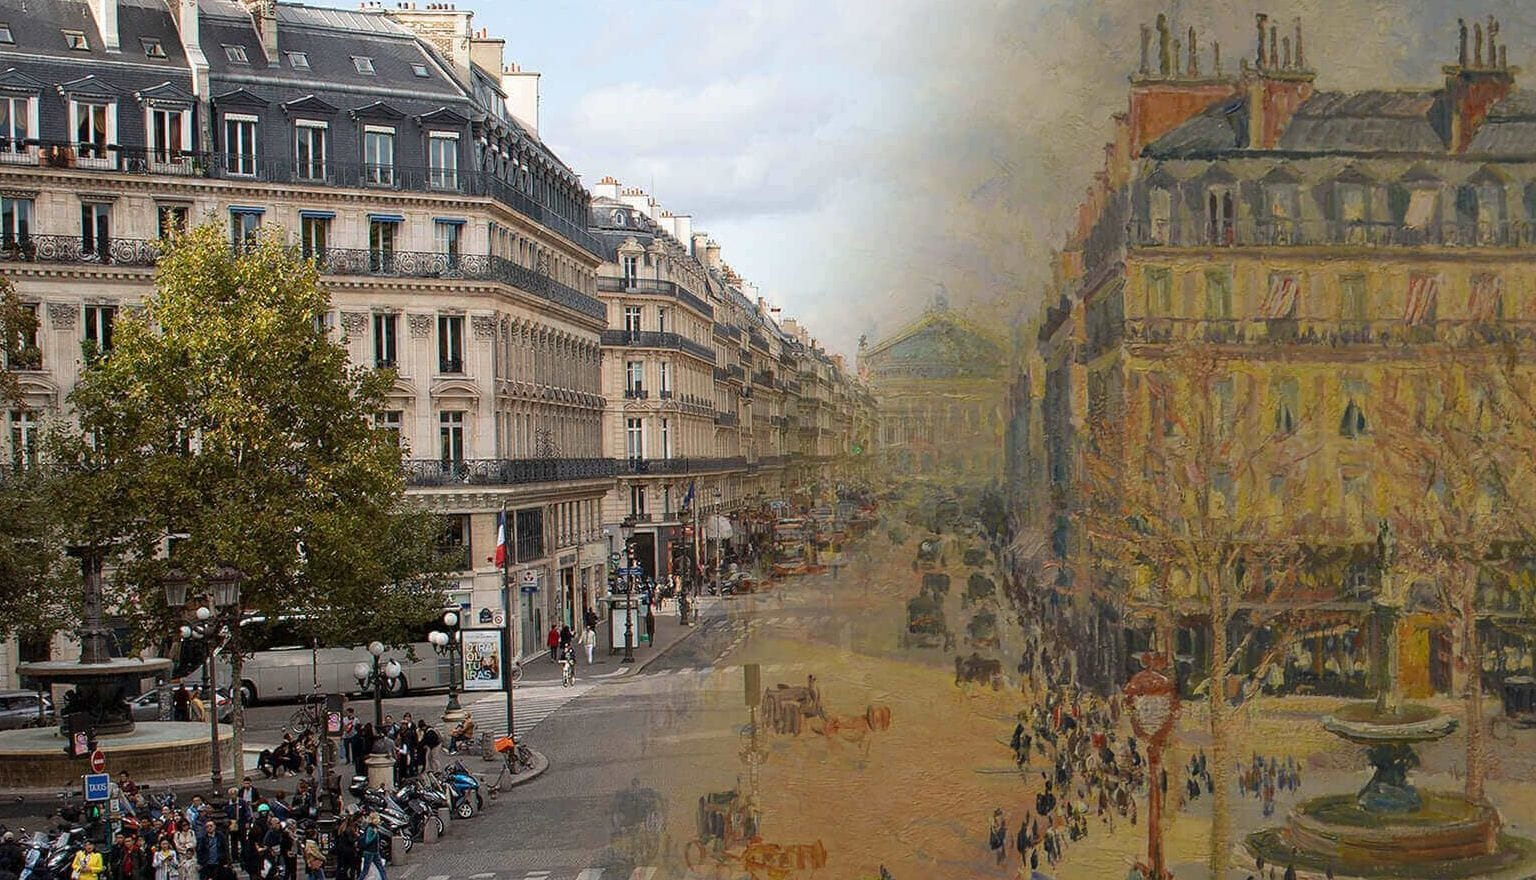 Yesterday and today picture of Place Colette in Paris